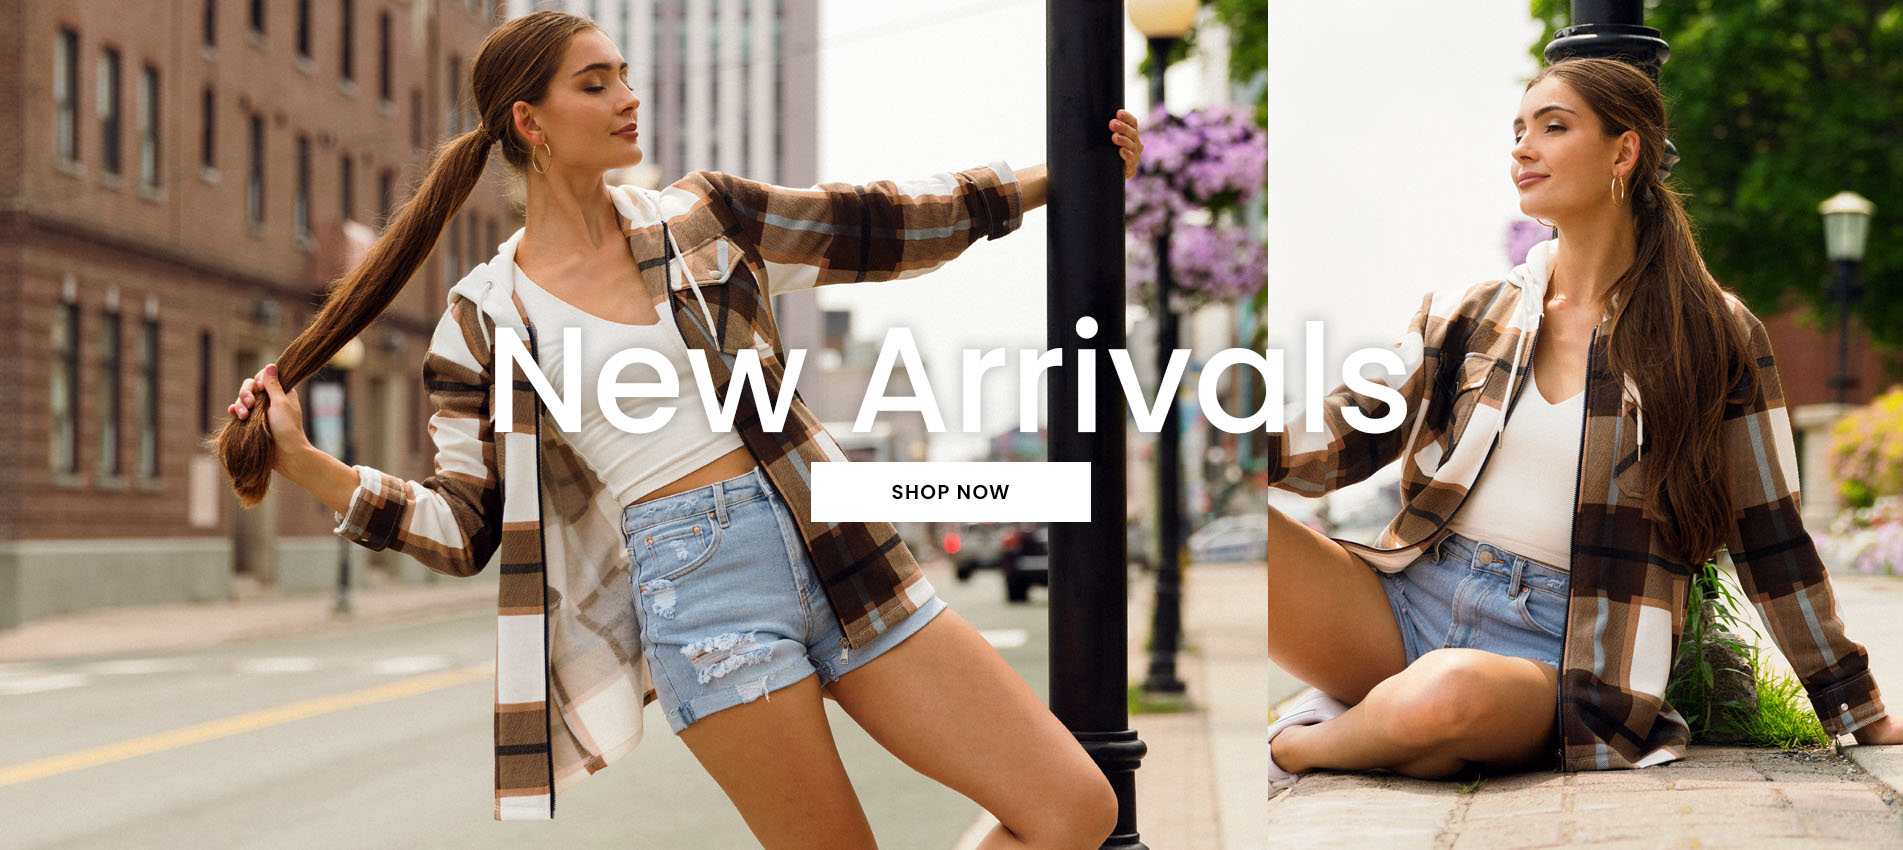 New: our latest Styles just landed. Shop now